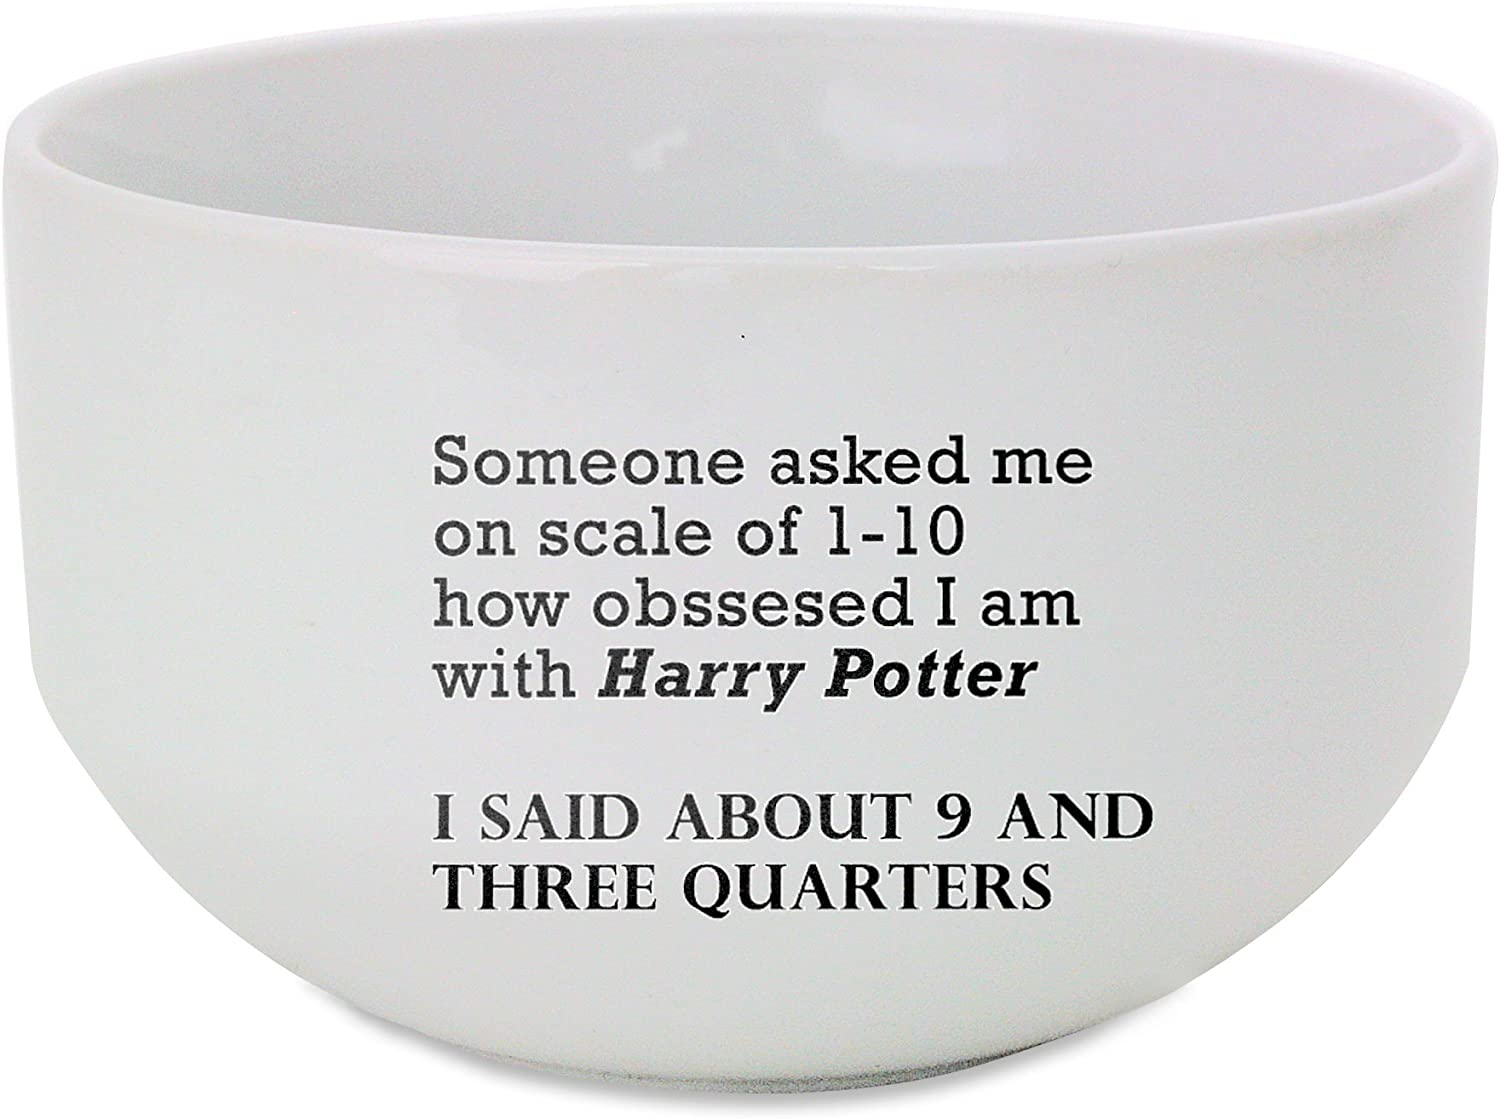 Fotomax Obsession with Harry Potter ceramic bowl